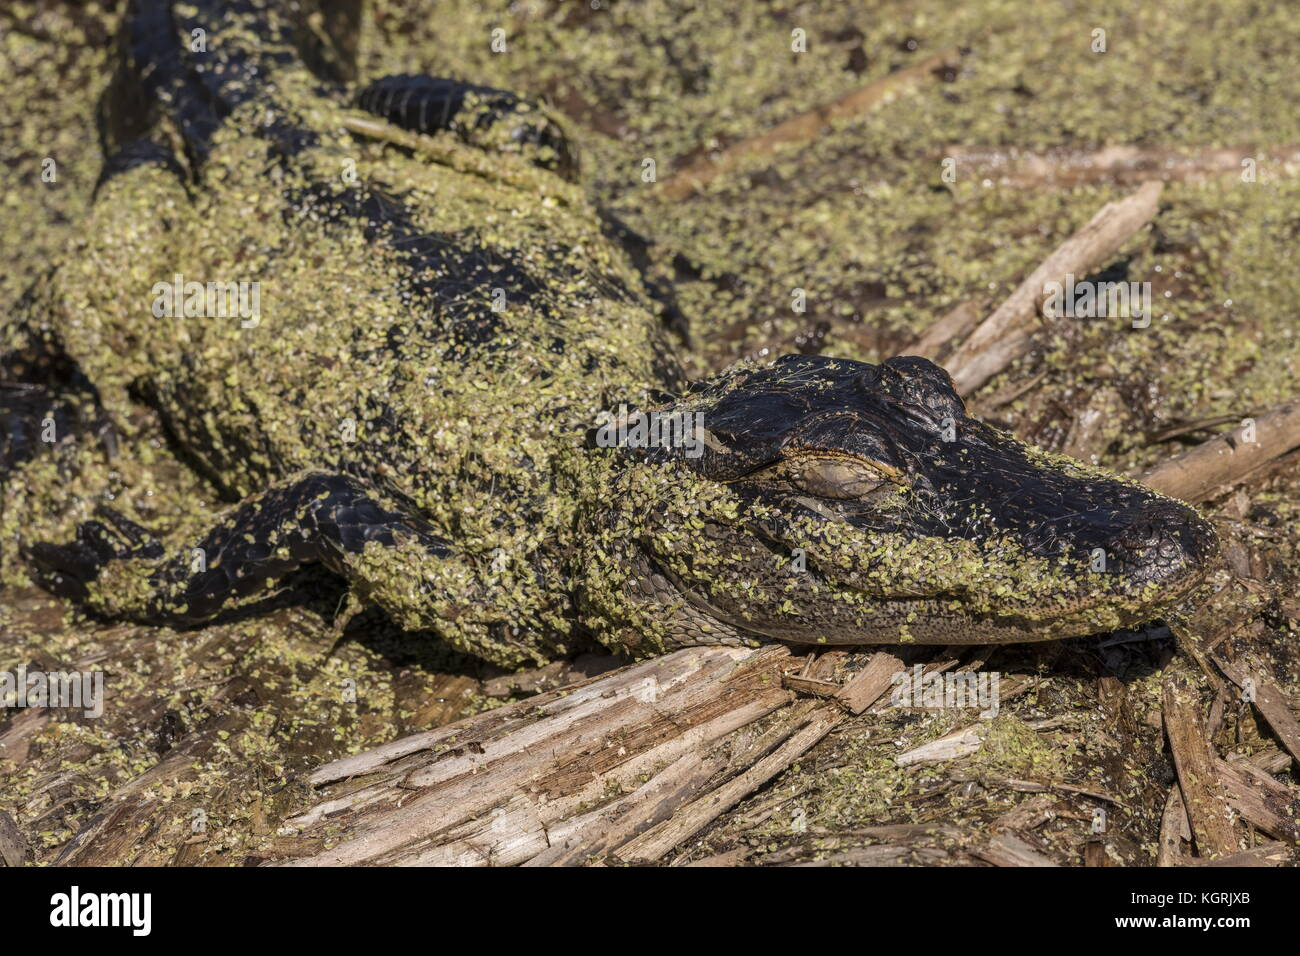 American alligator, Alligator mississippiensis, covered with duckweed, basking. Florida. - Stock Image